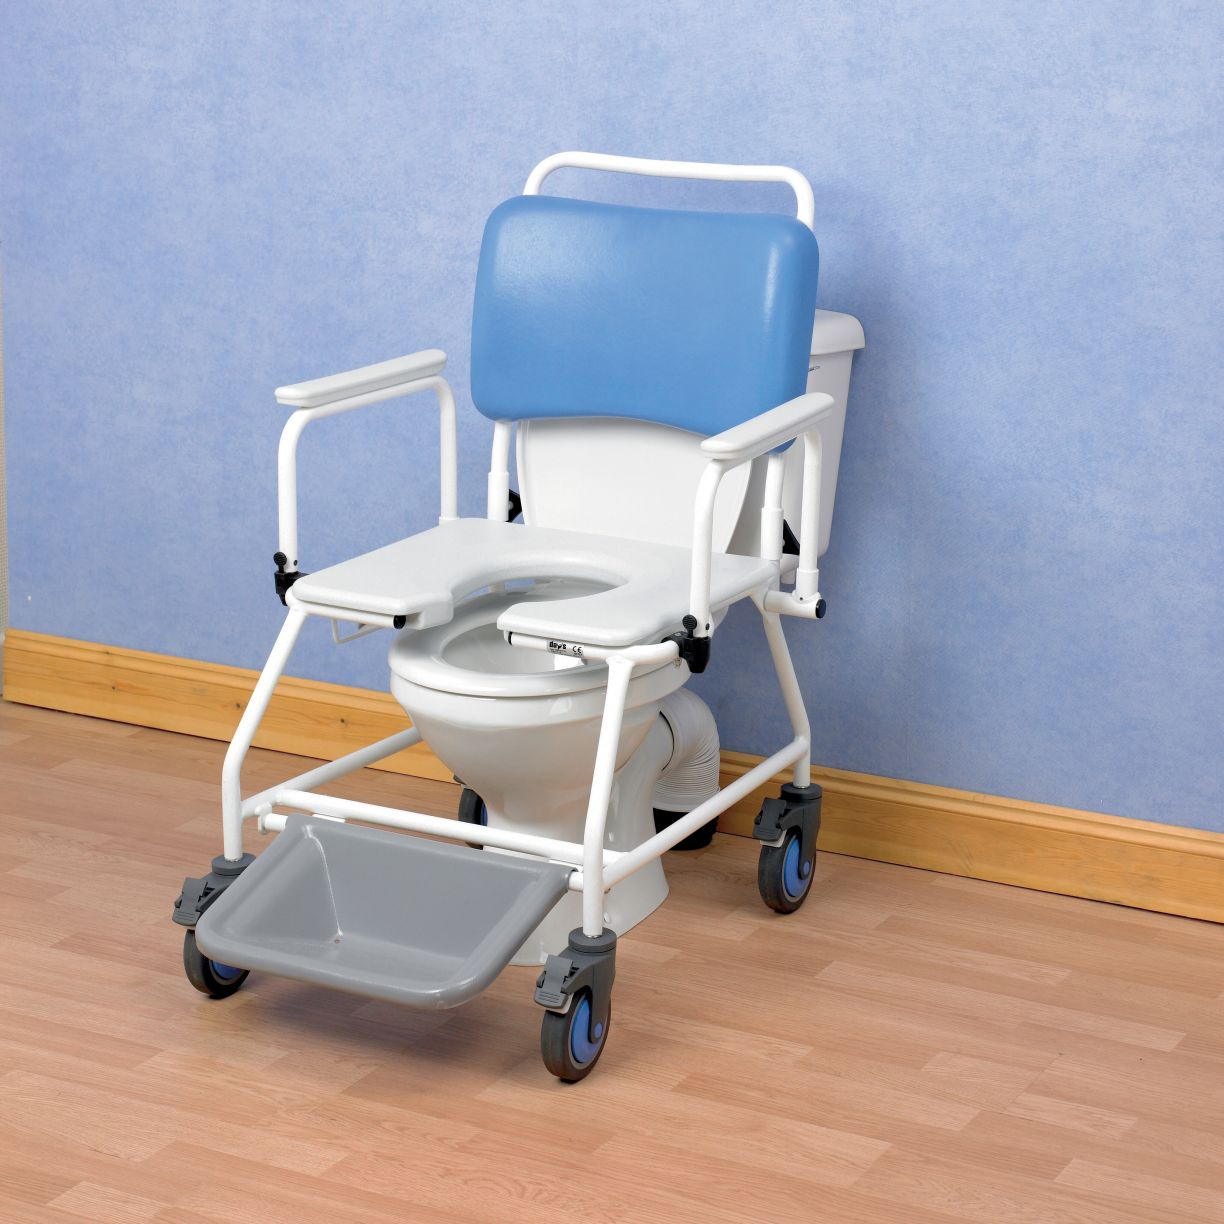 Shower Commode Chair Commode And Shower Chair Atlantic Bariatric With Footrests